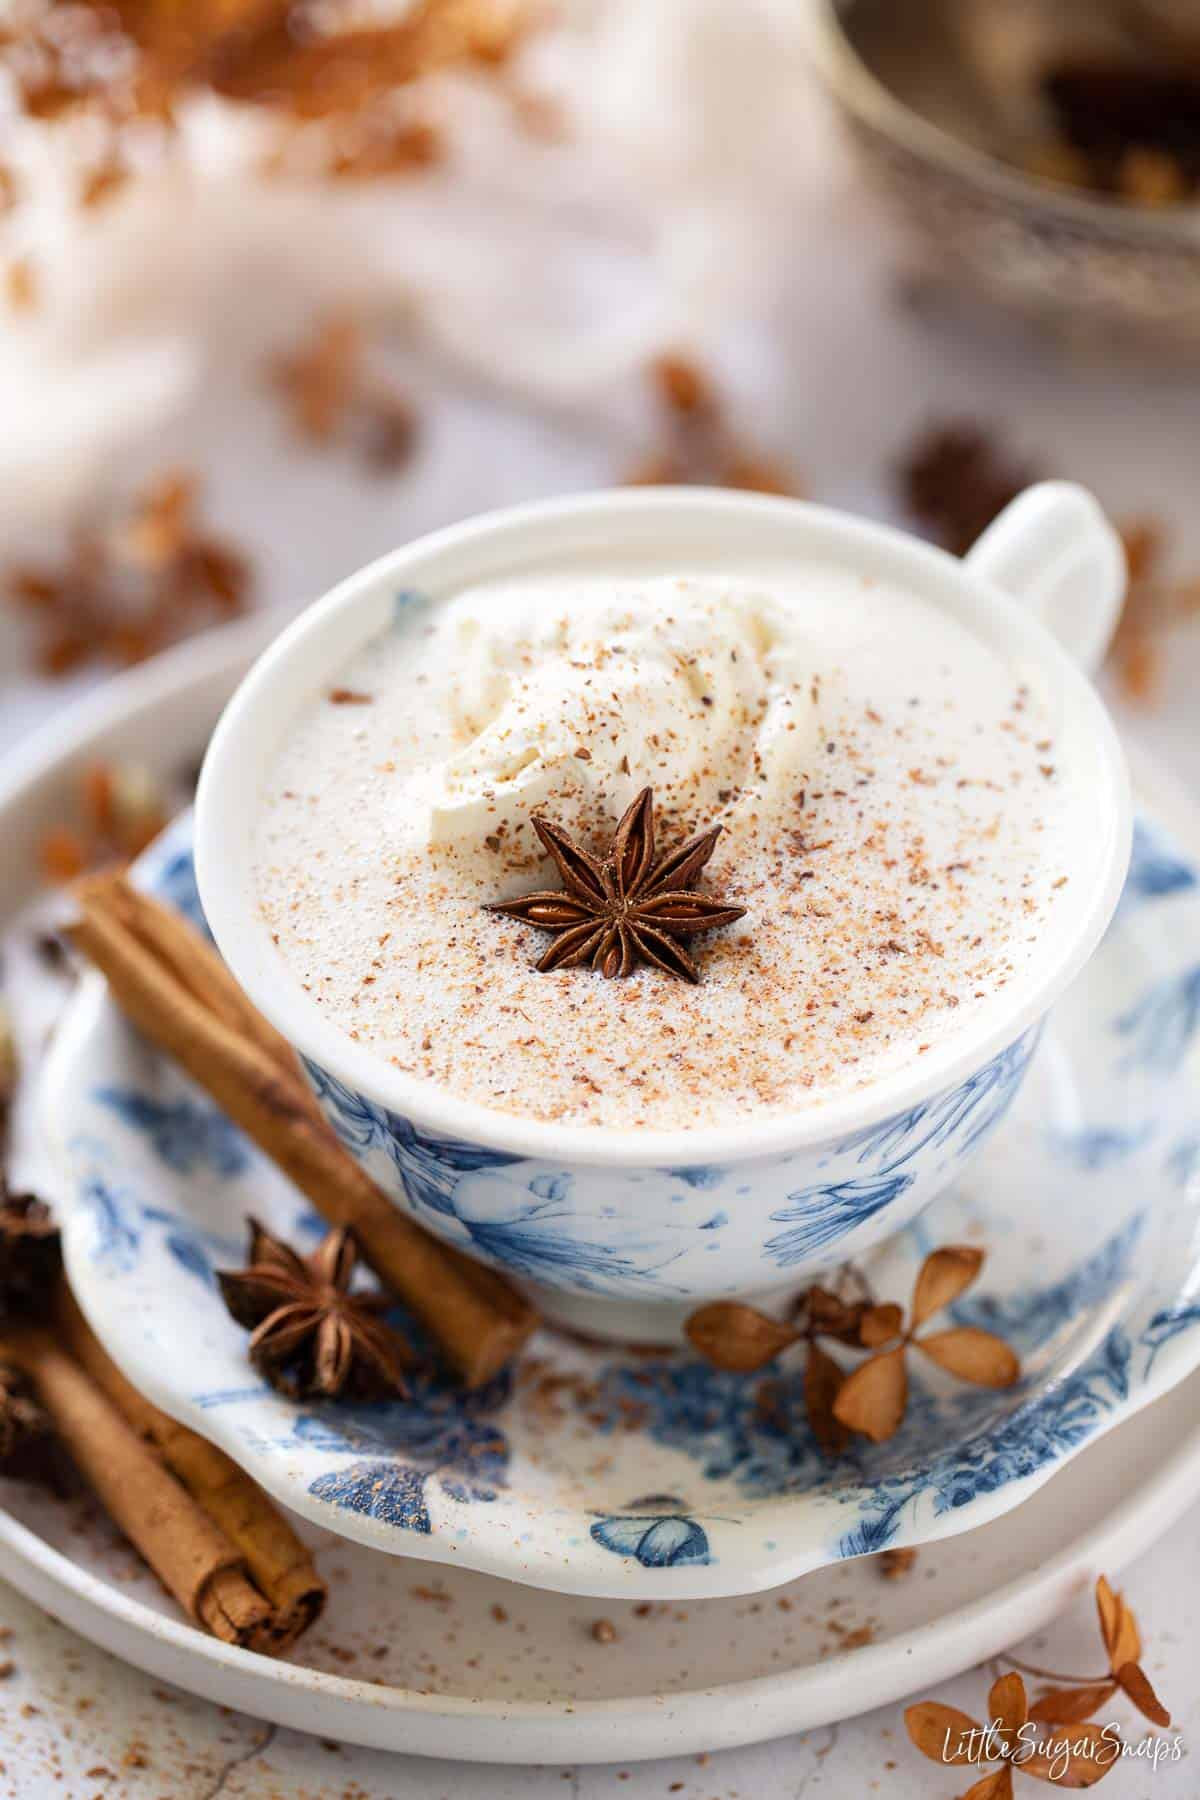 A cup of frothy spiced hot chocolate with cream, ground spices and star anise garnish